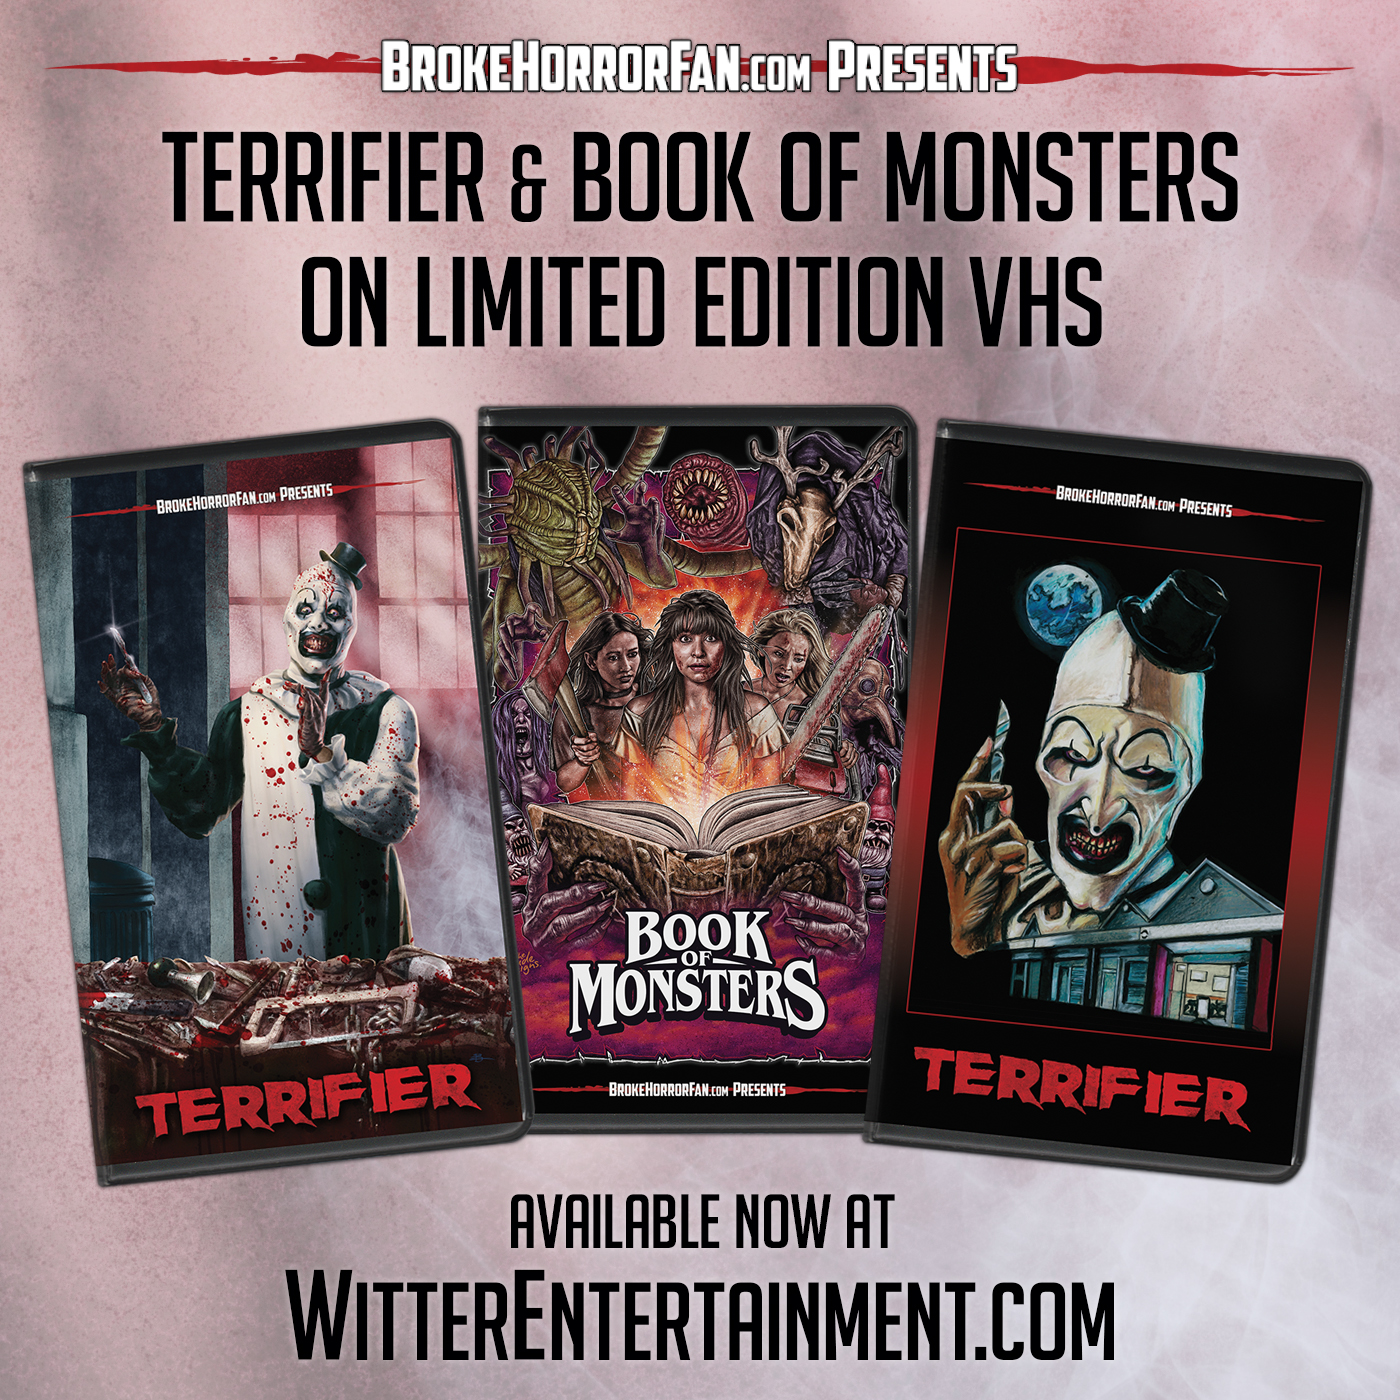 [News] TERRIFIER and BOOK OF MONSTERS Coming to VHS